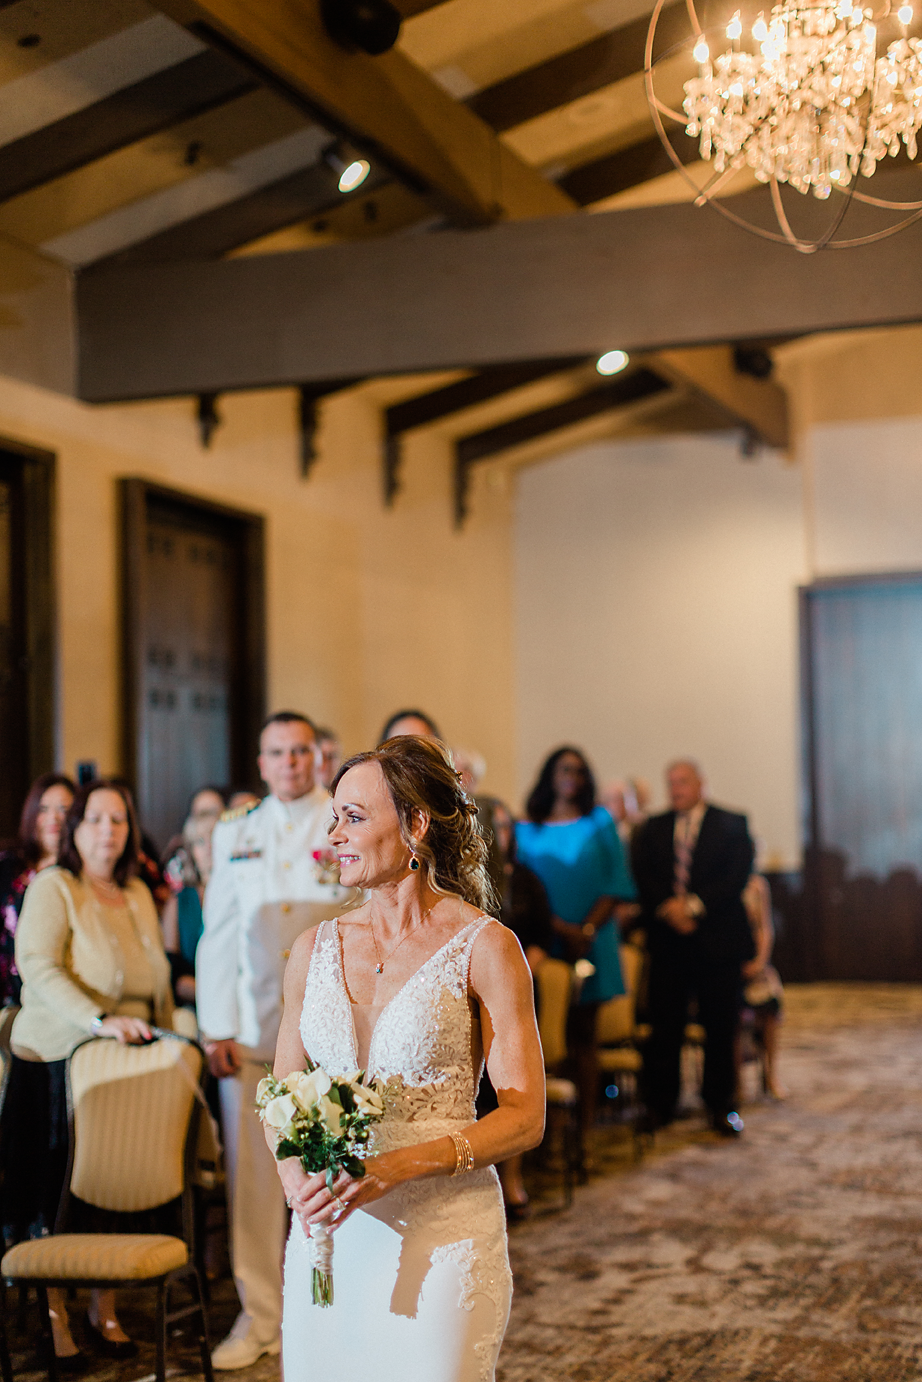 Dallas Wedding photography Las Colinas Country Club bride walking down aisle Kate Marie Portraiture.png